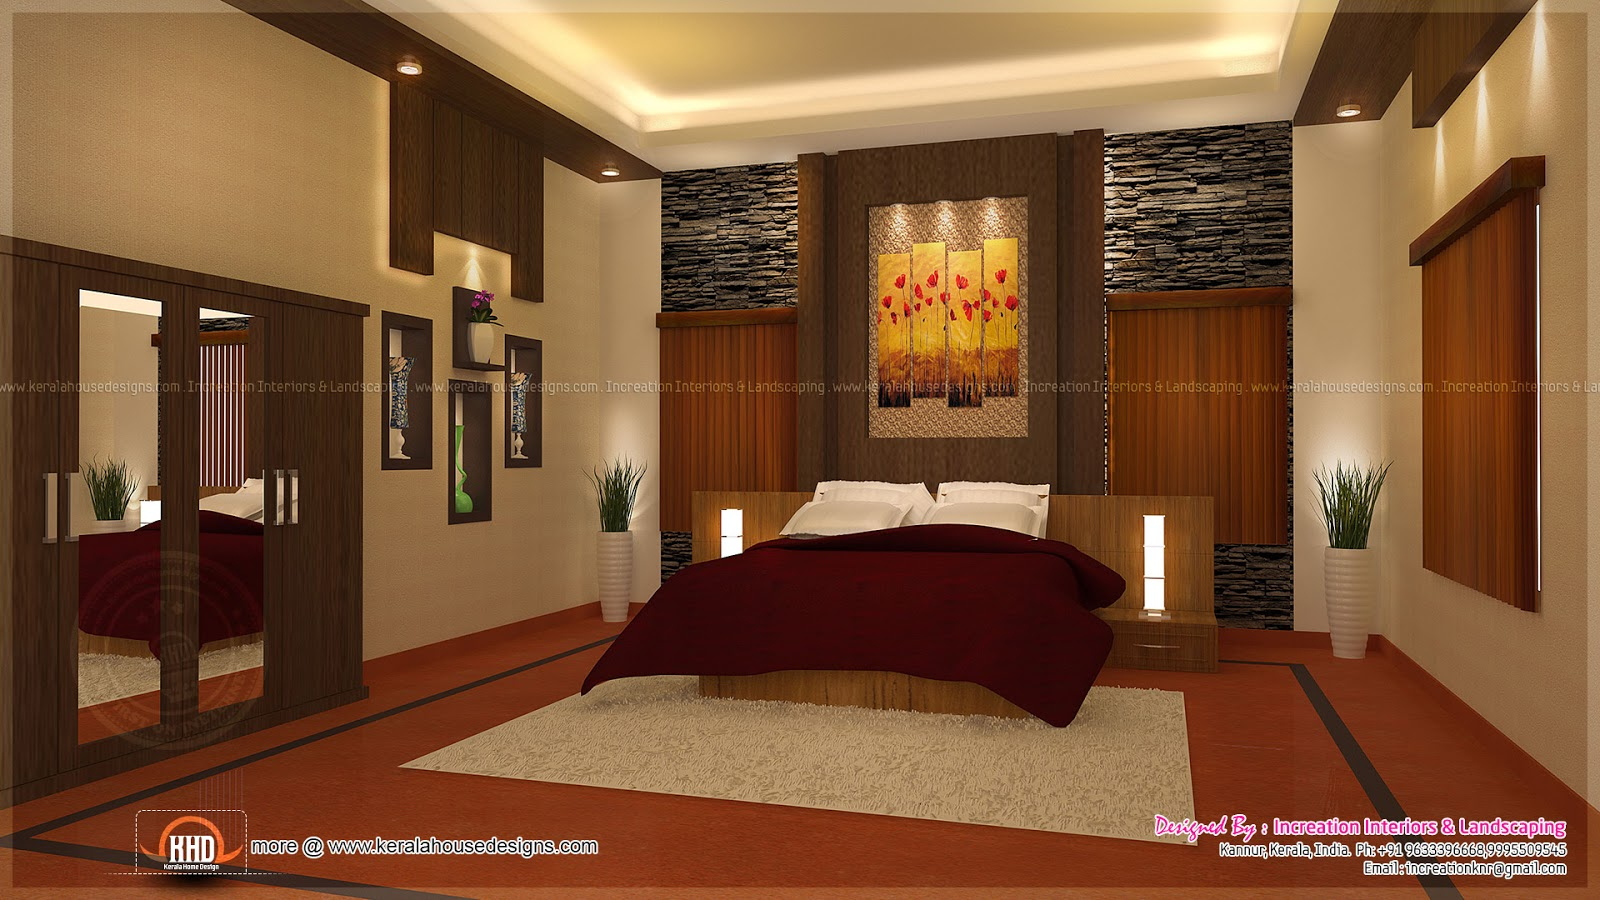 Master bedroom interior for Master bedroom interior design images